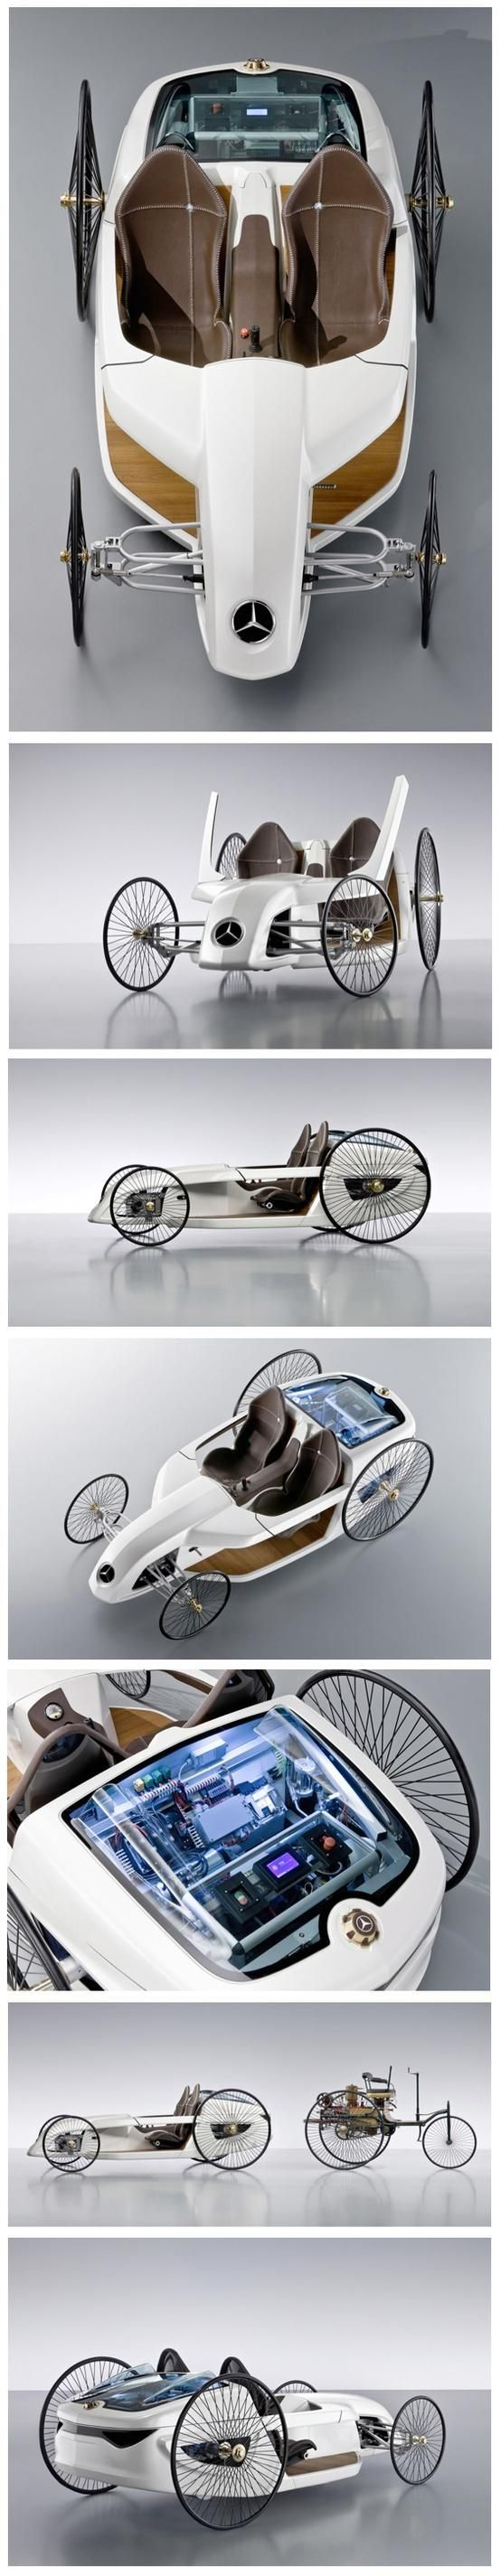 Mercedes-#Benz F-CELL Roadster with Hybrid Drive